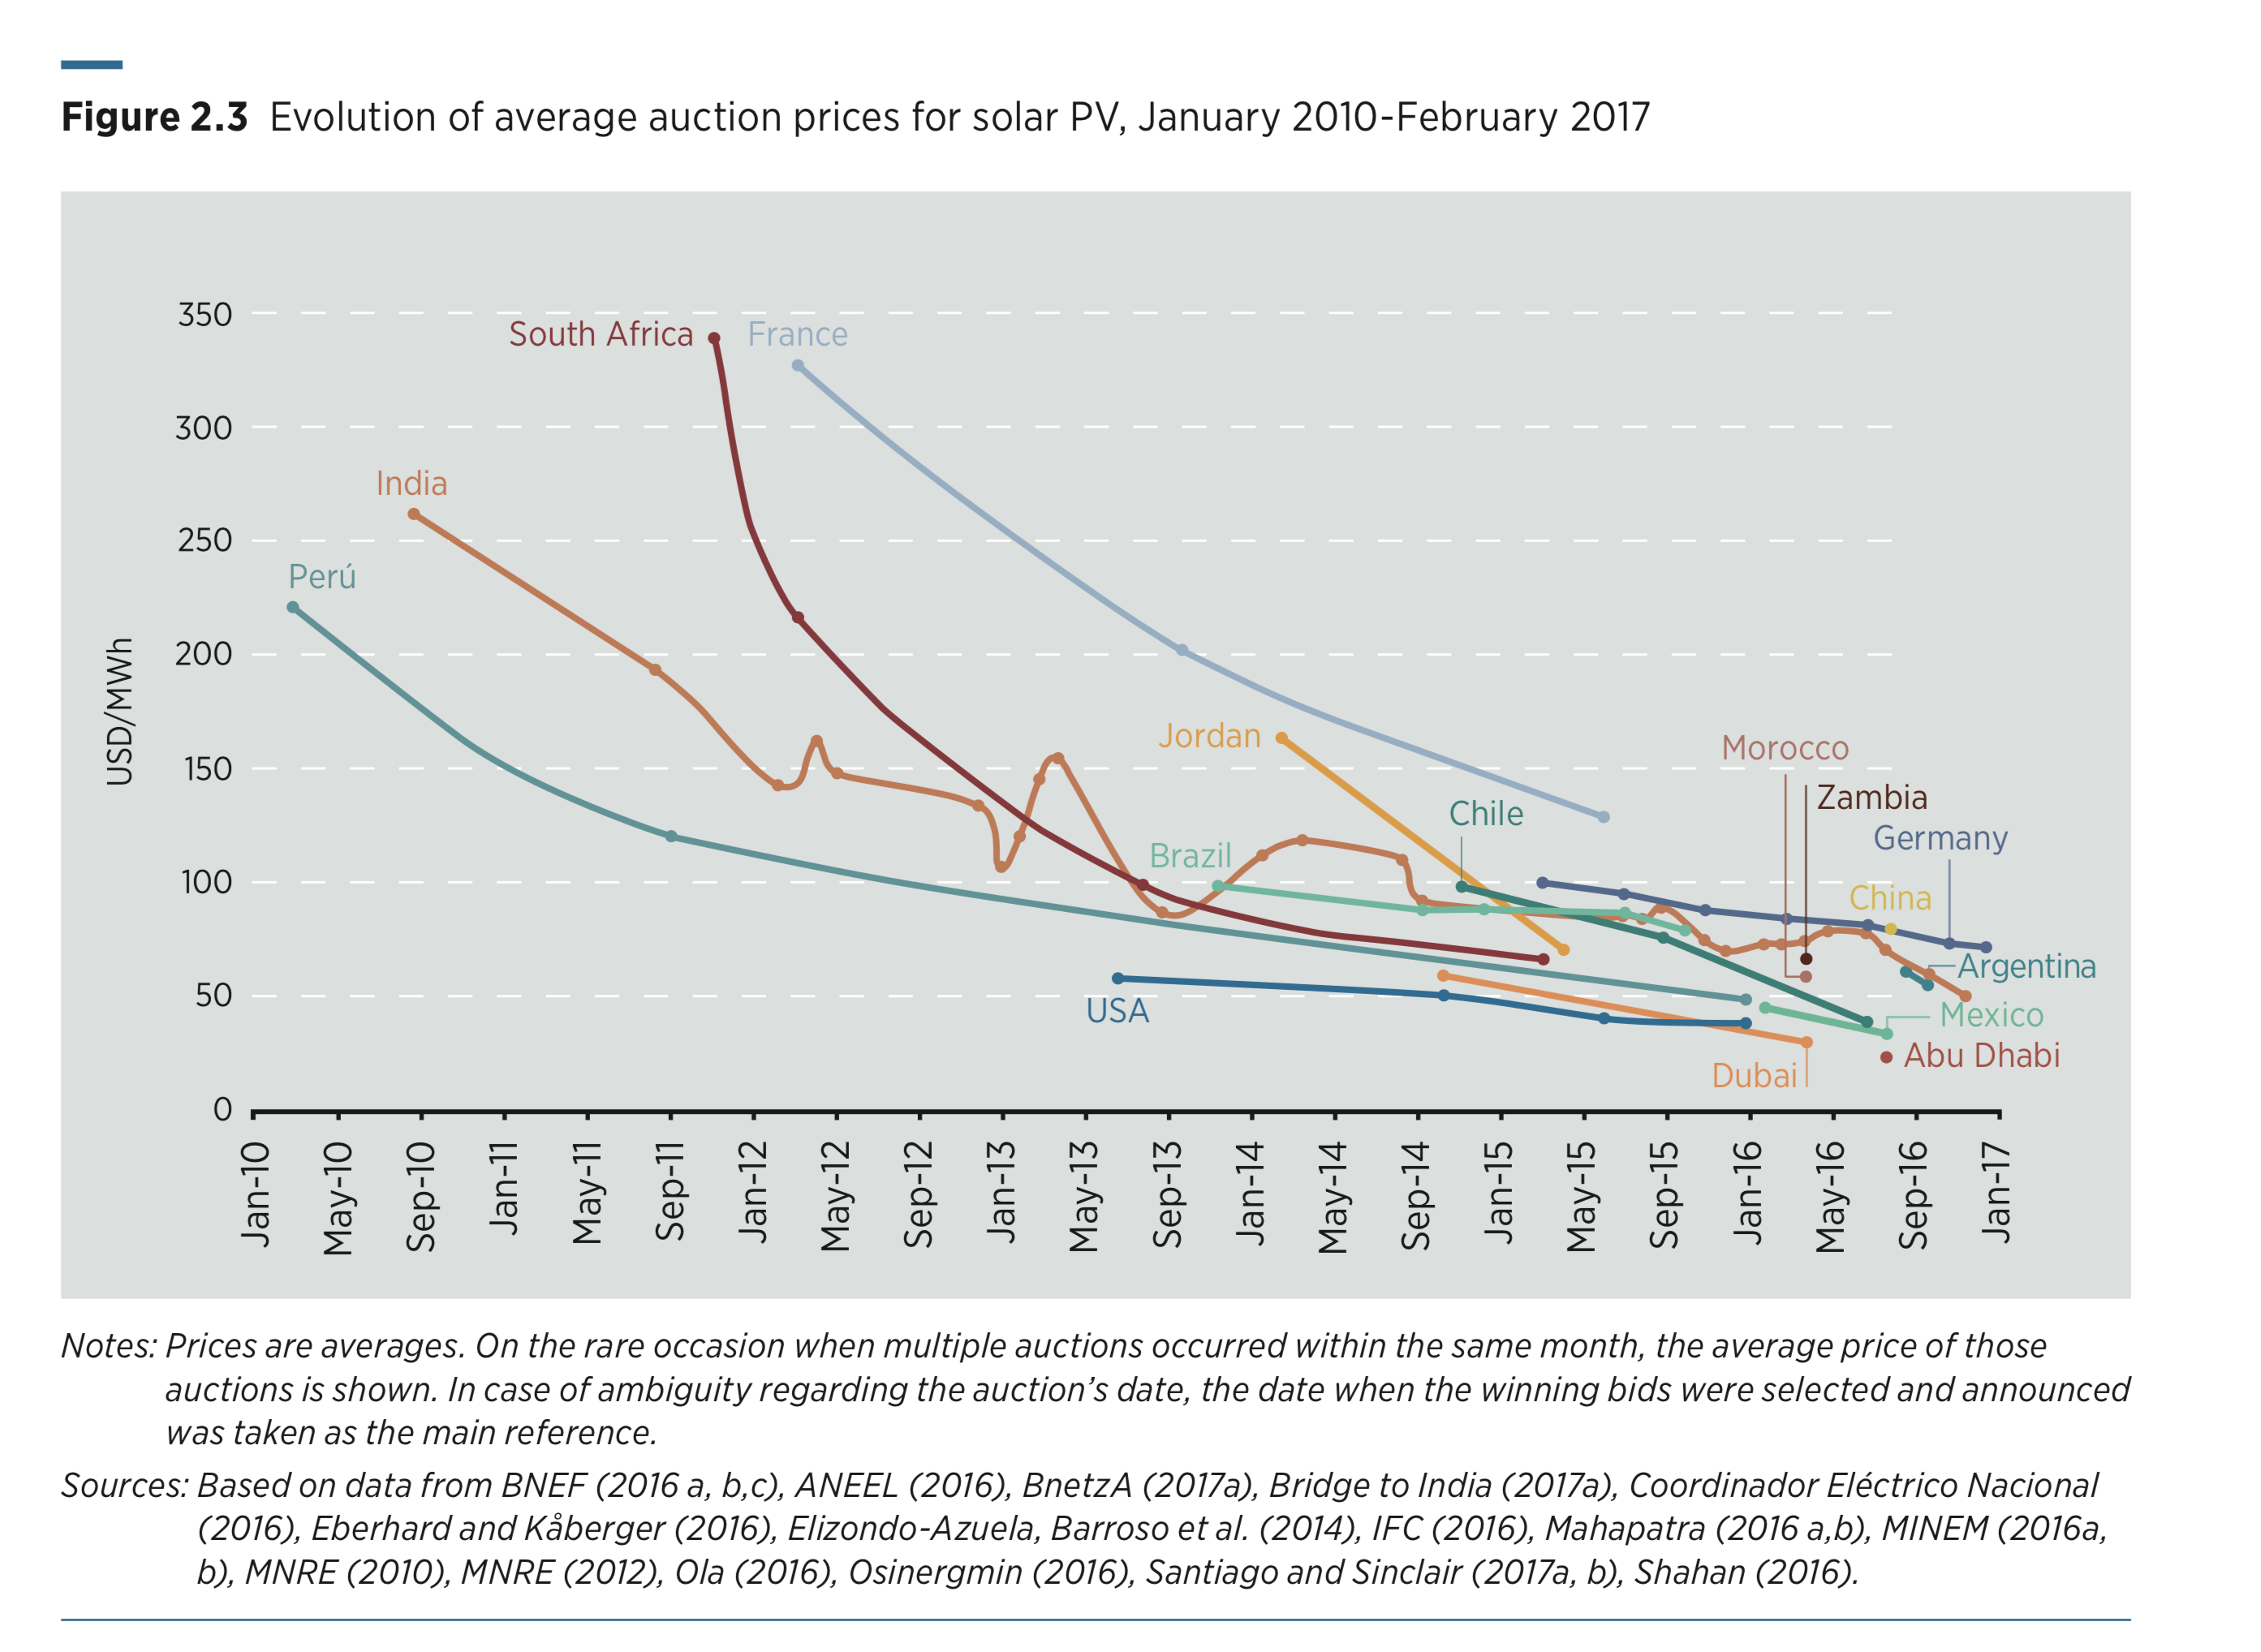 Auction prices for solar energy have dropped substantially - and Mexico is among the cheapest